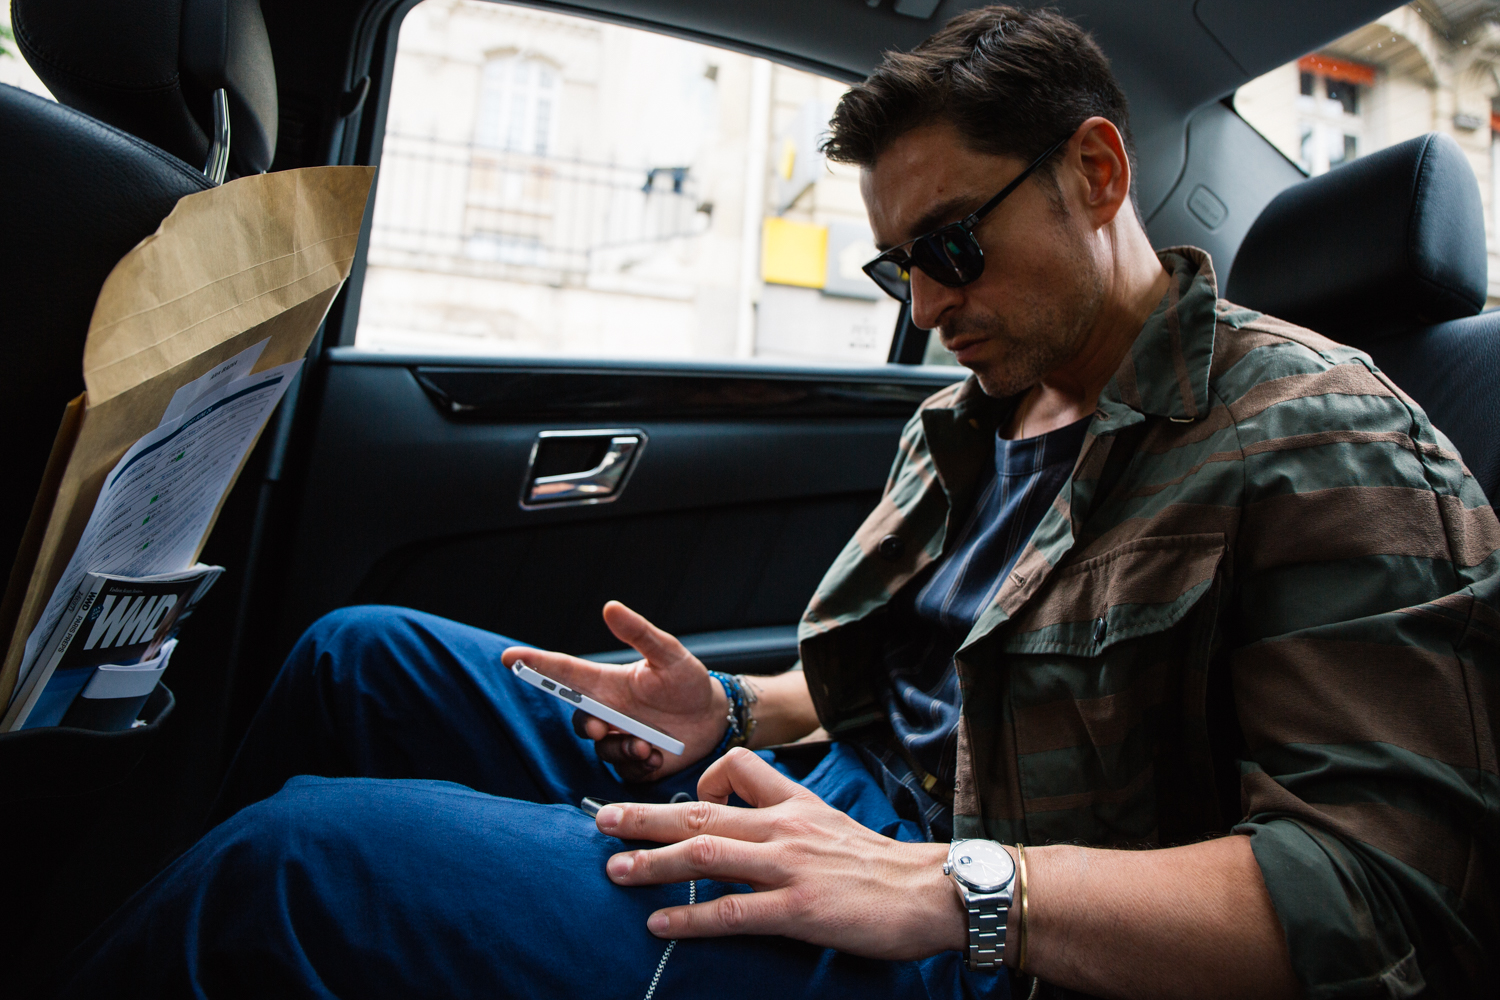 Working out of his phone in between shows is a norm for this busy fashion director.